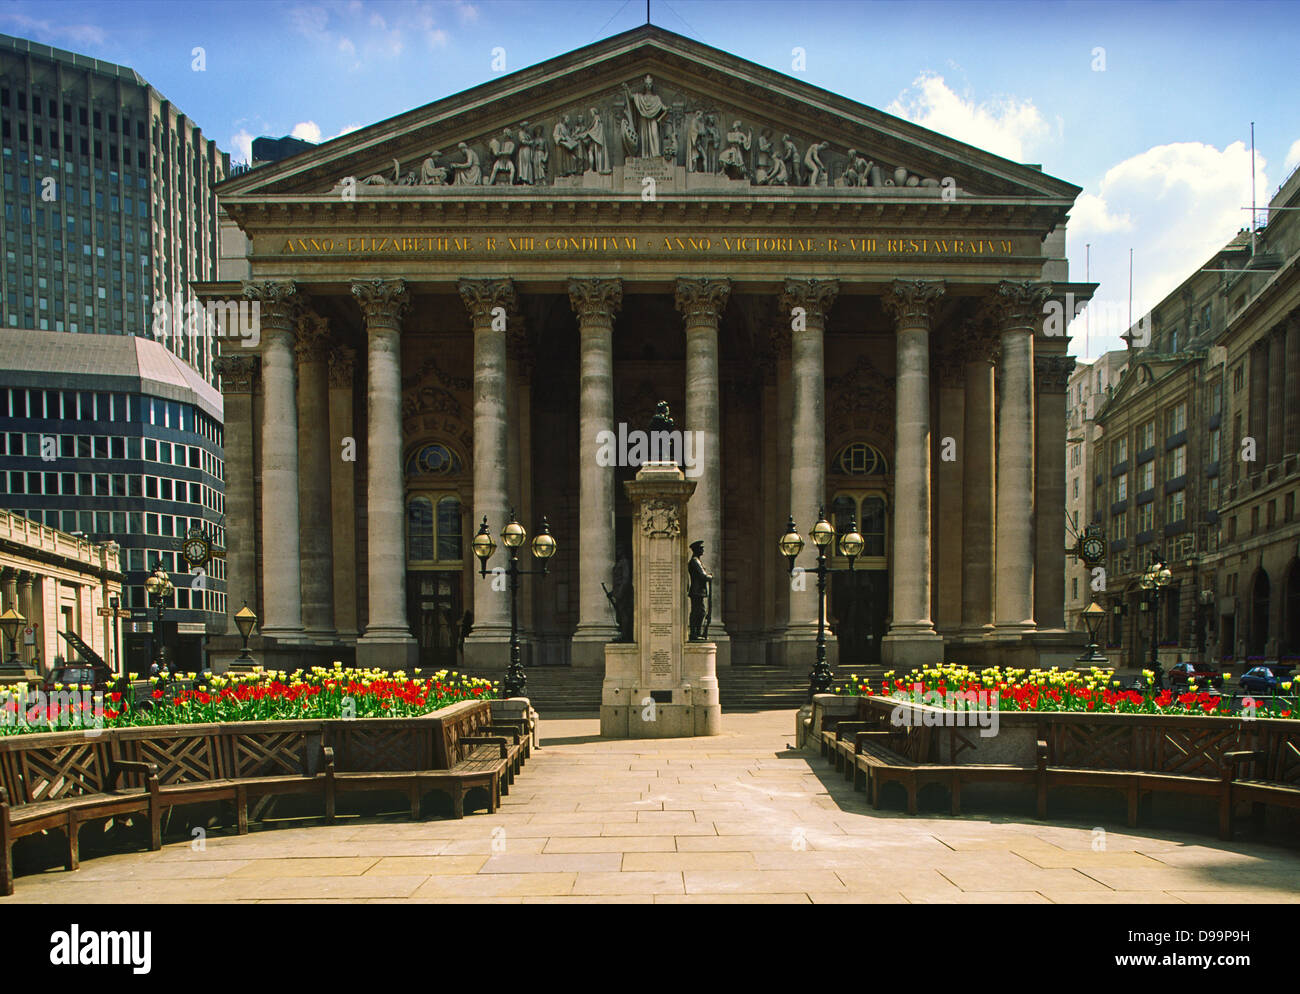 Classical facade of the Royal Exchange in the City of London designed by William Tite - Stock Image